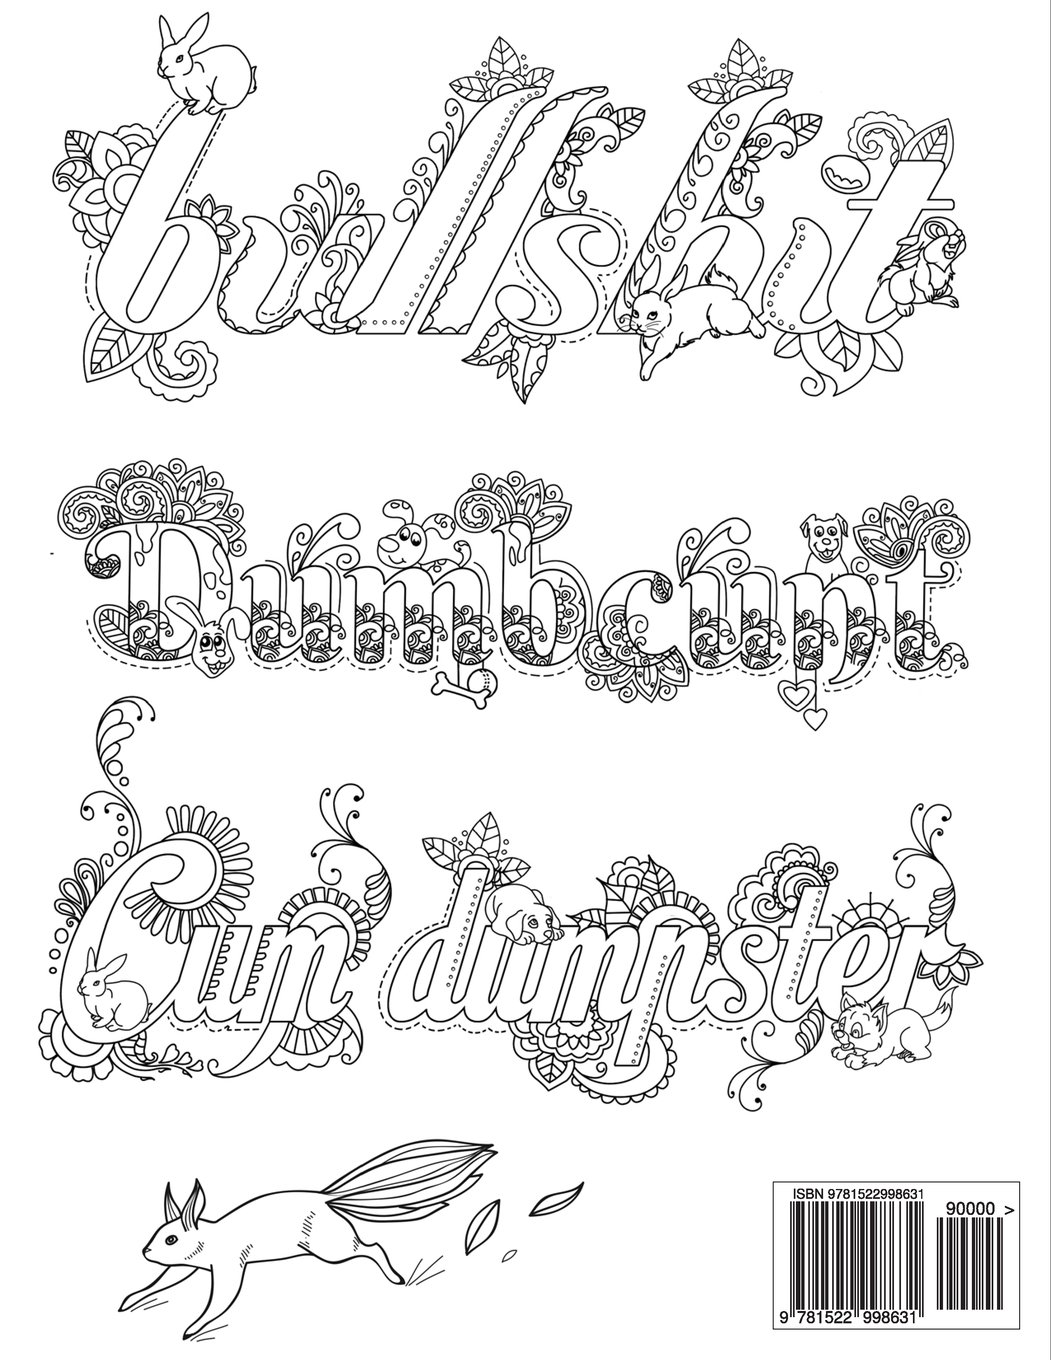 Coloring sheets with words - Coloring Sheets With Words